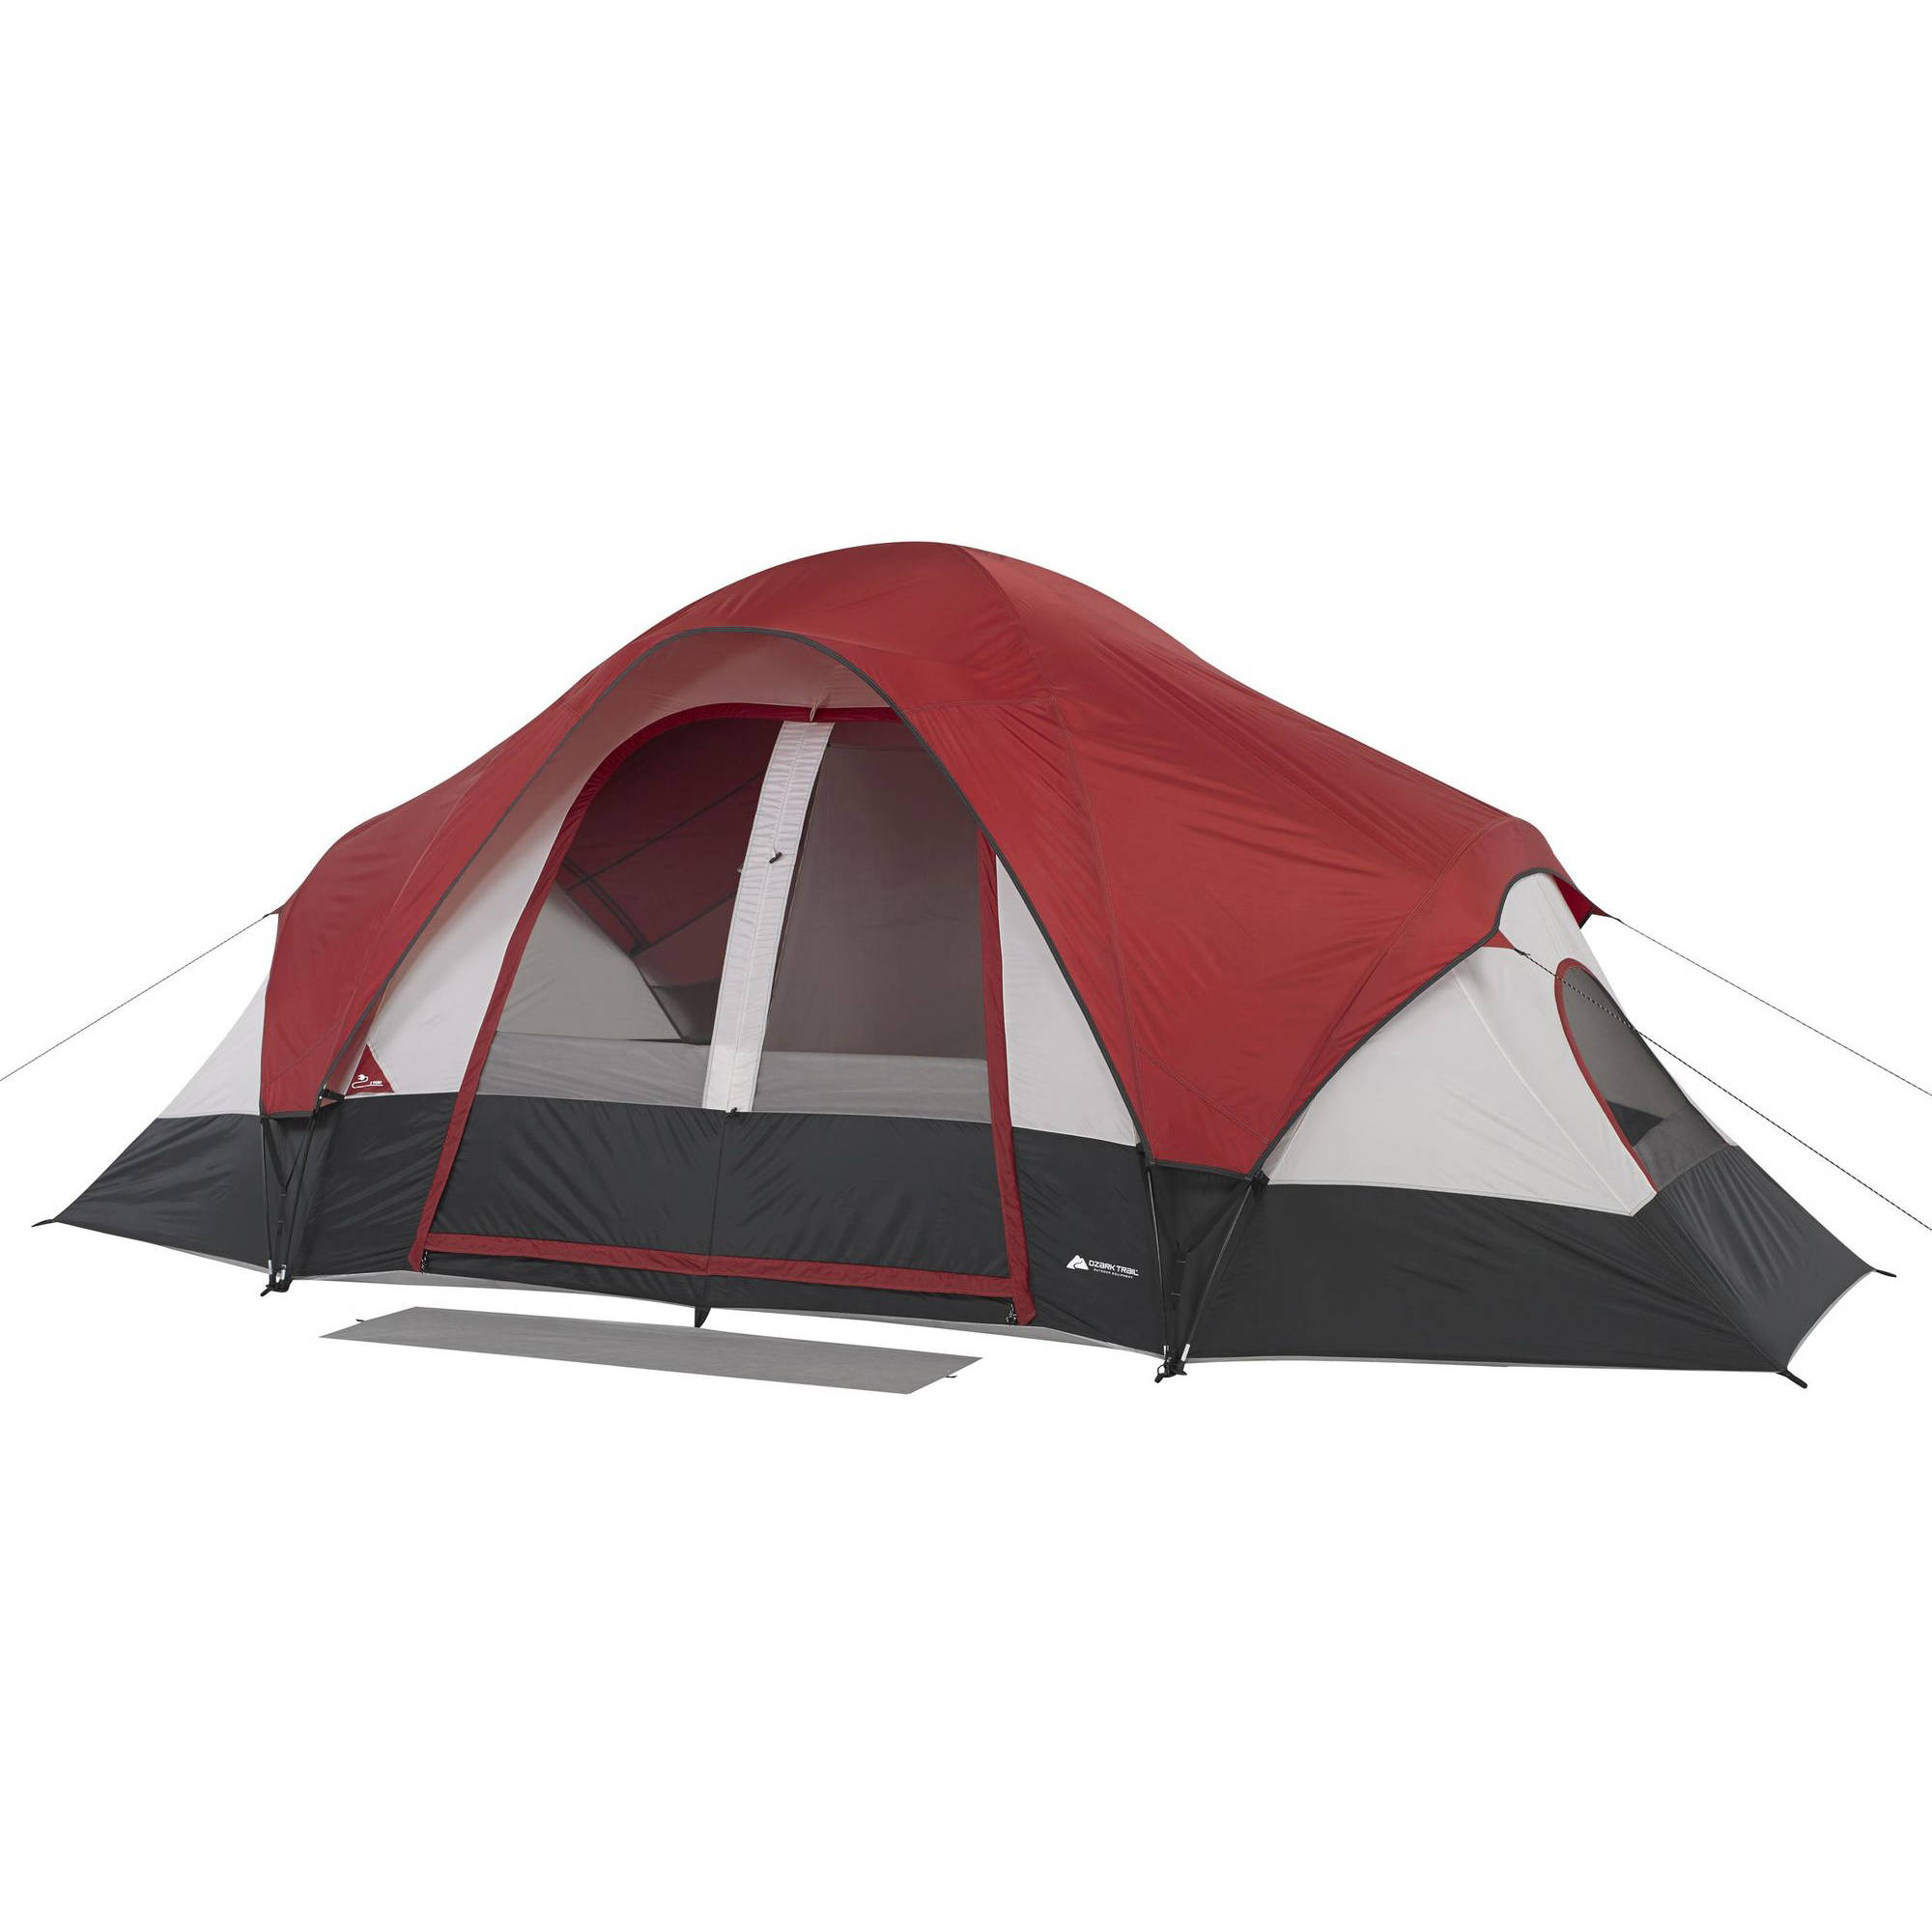 Ozark Trail 8-Person Family Tent  sc 1 st  Walmart & Ozark Trail 8-Person Family Tent - Walmart.com